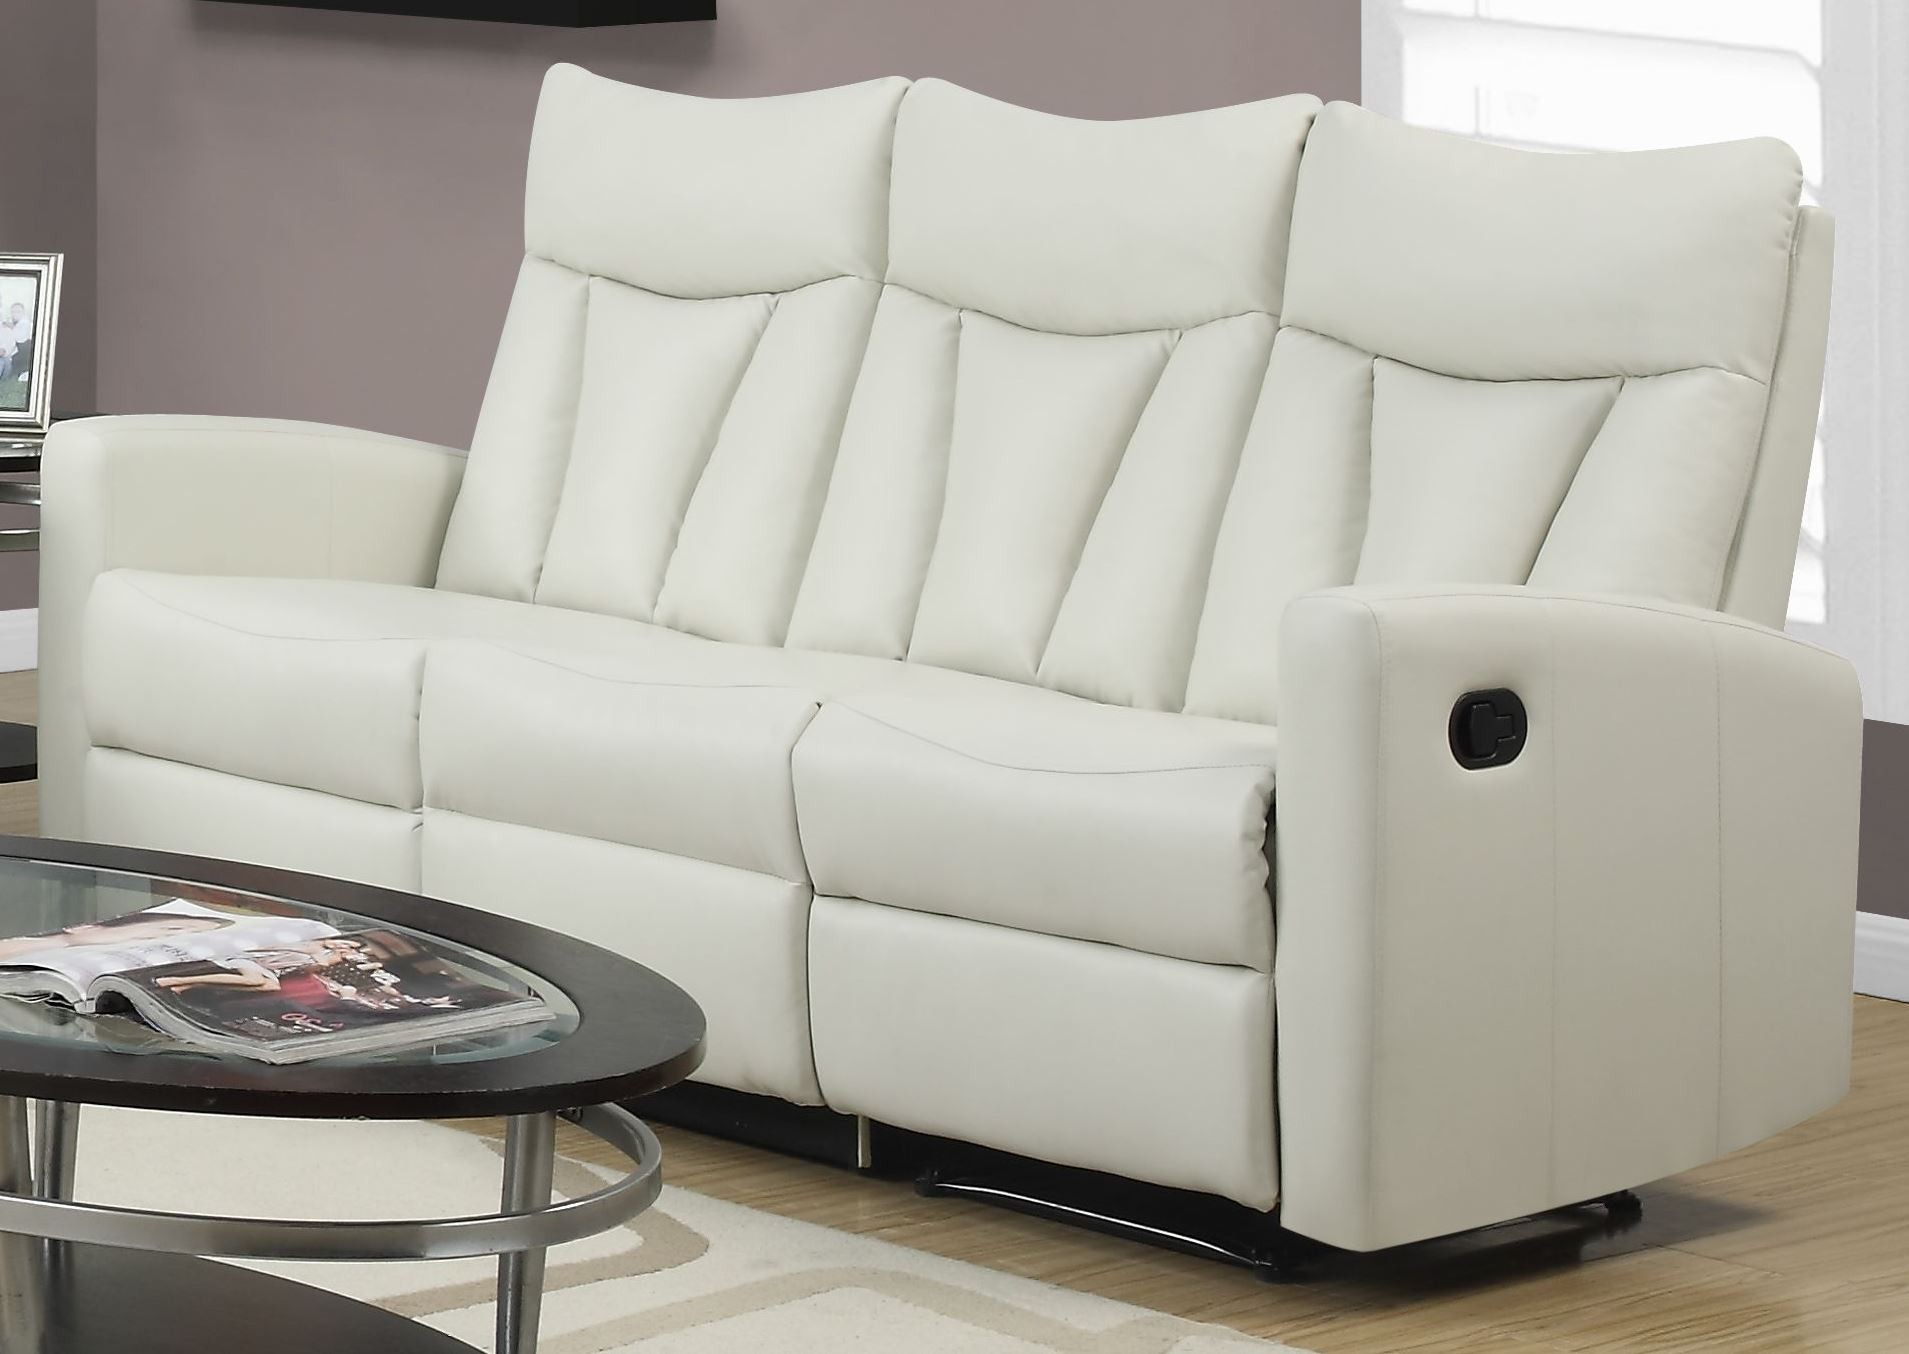 87iv 3 Ivory Bonded Leather Reclining Sofa From Monarch